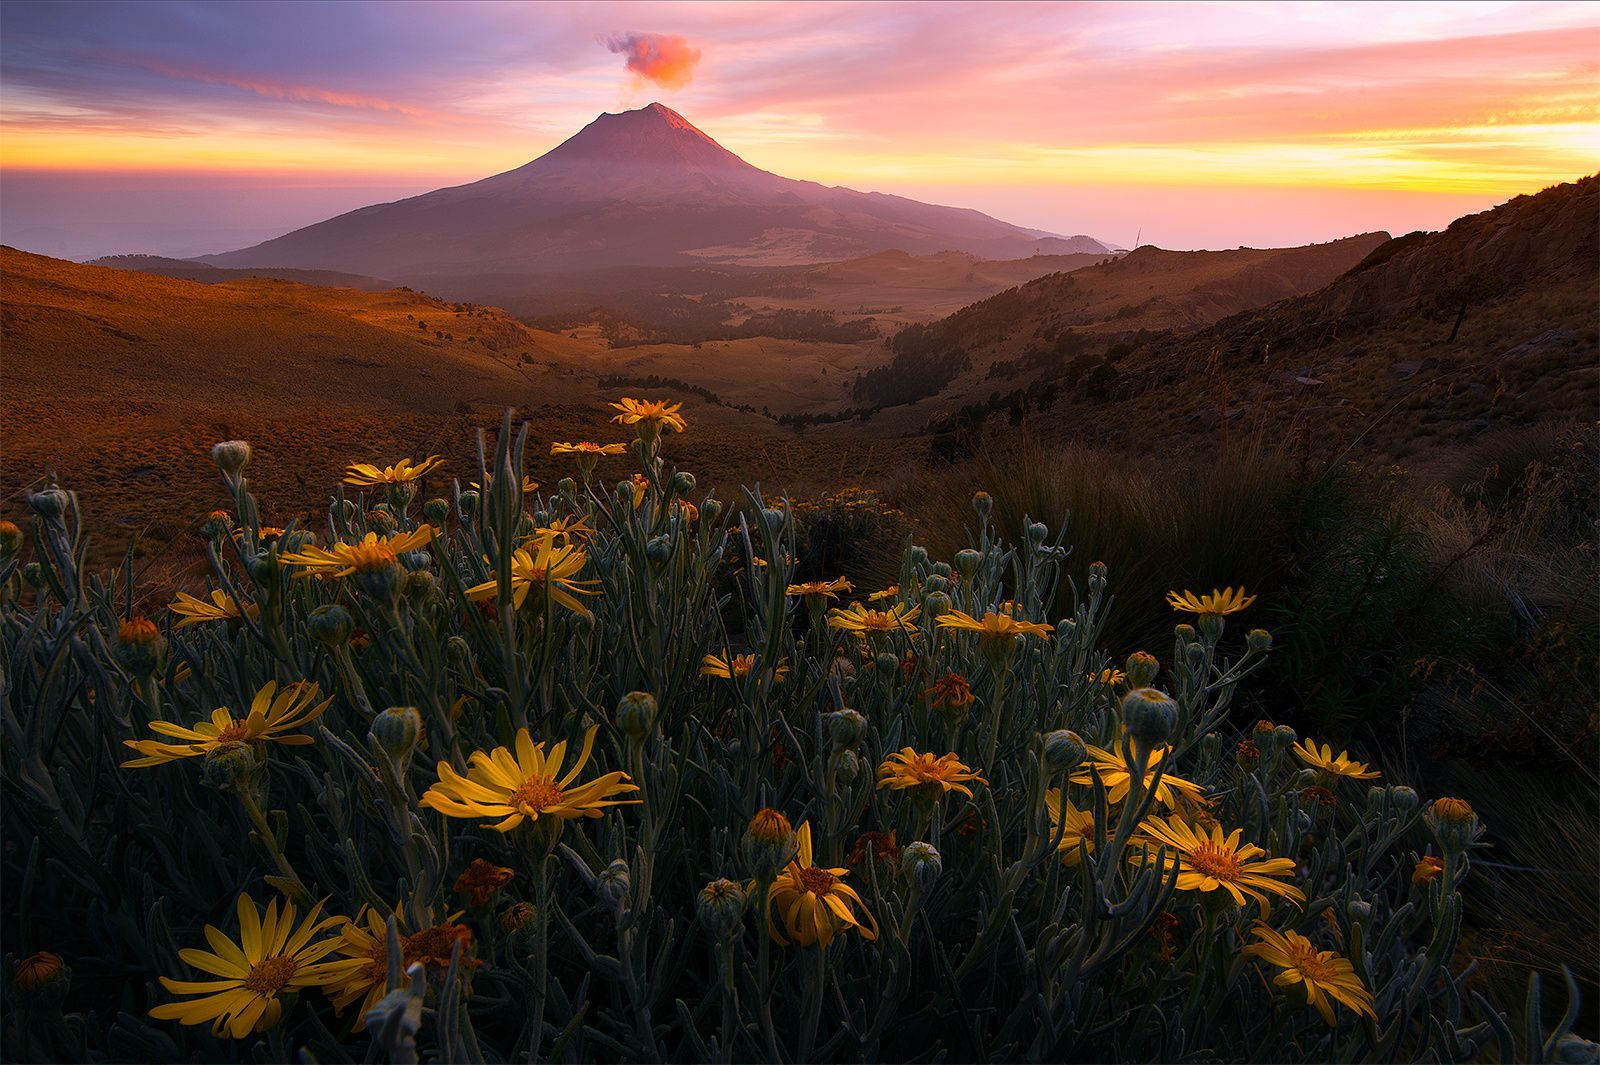 Popocatépetl, Mexico  12/31/2015, we were standing in front of Popocatépetl, the most famous volcano, a live volcano which last eruption was in 2013, and also the second highest mountain in Mexico. Our mexico trip is about to be end and the last sunset didn't disappoint us. Actually, it was too perfect. We got some nice shots in this trip but didn't see any yellow-red-pink sunrise/sunset show yet and this was our last chance. We climbed two miles at 13000 feet elevation to this viewpoint and…